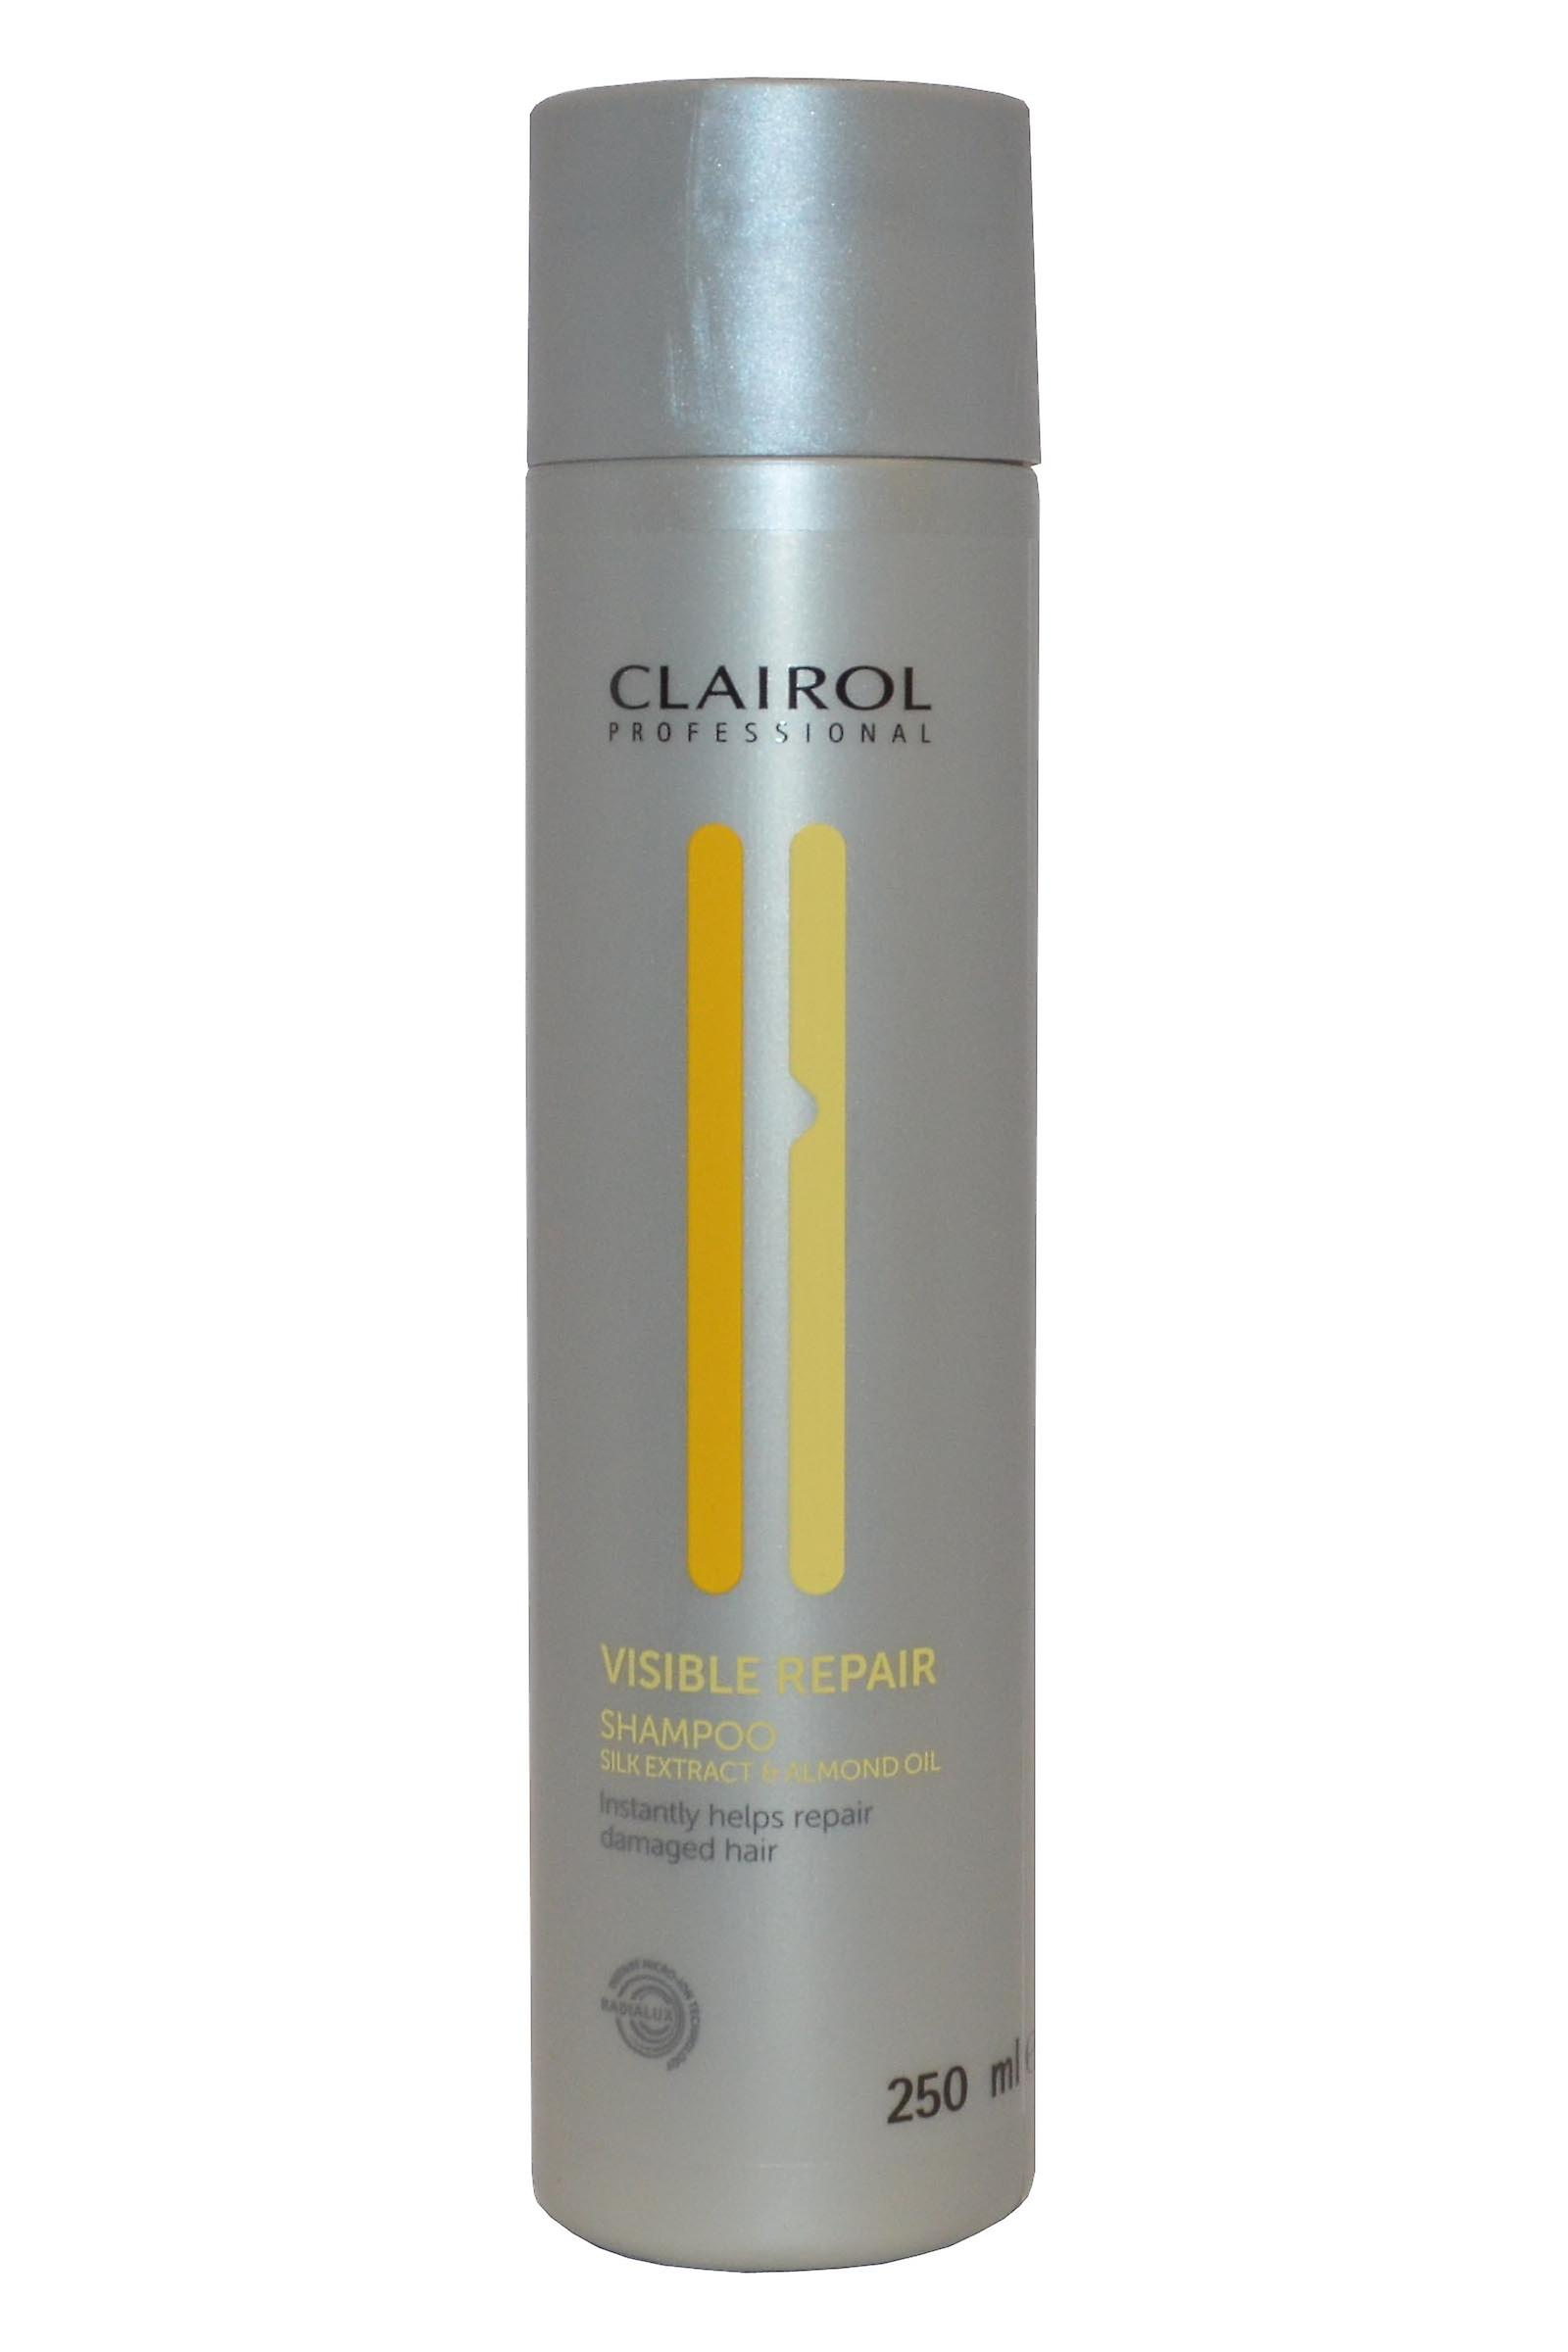 Clairol Professional Visible Repair Shampoo 250ml Silk Extract and Almond Oil